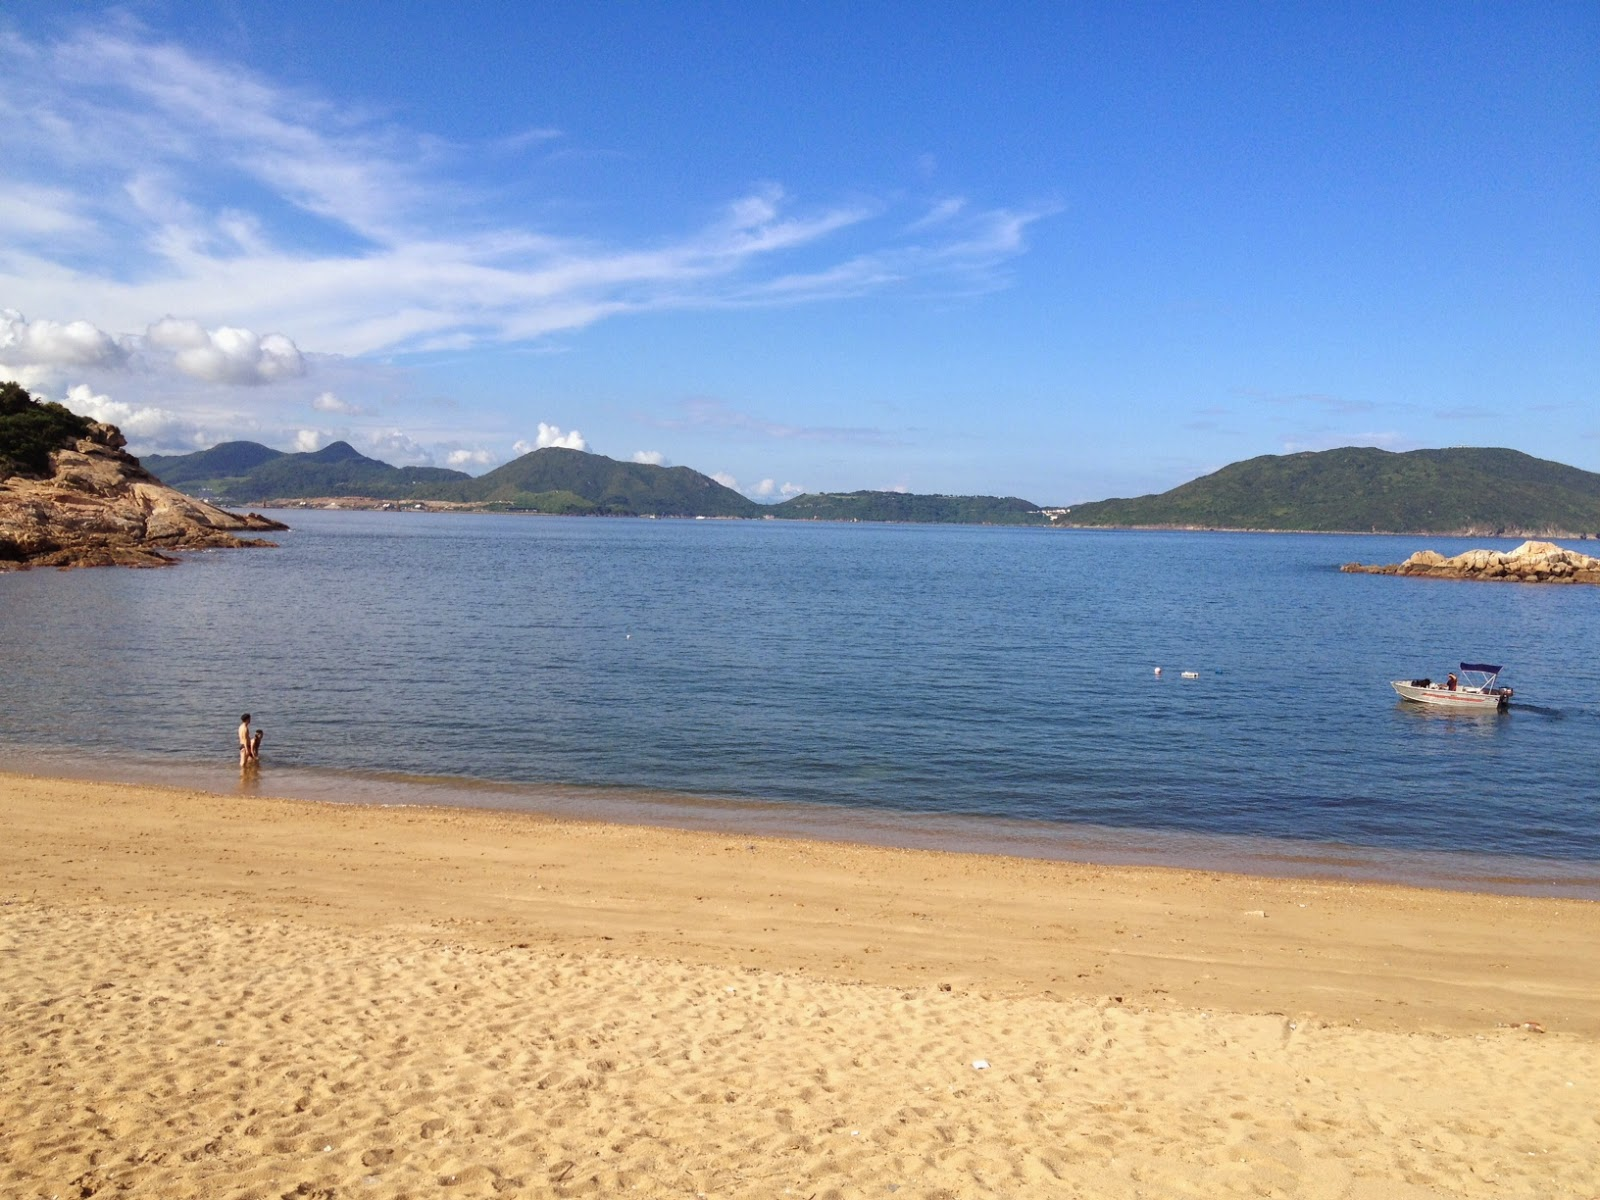 Of open water swimming views of hong kong businessmen vs swimmers